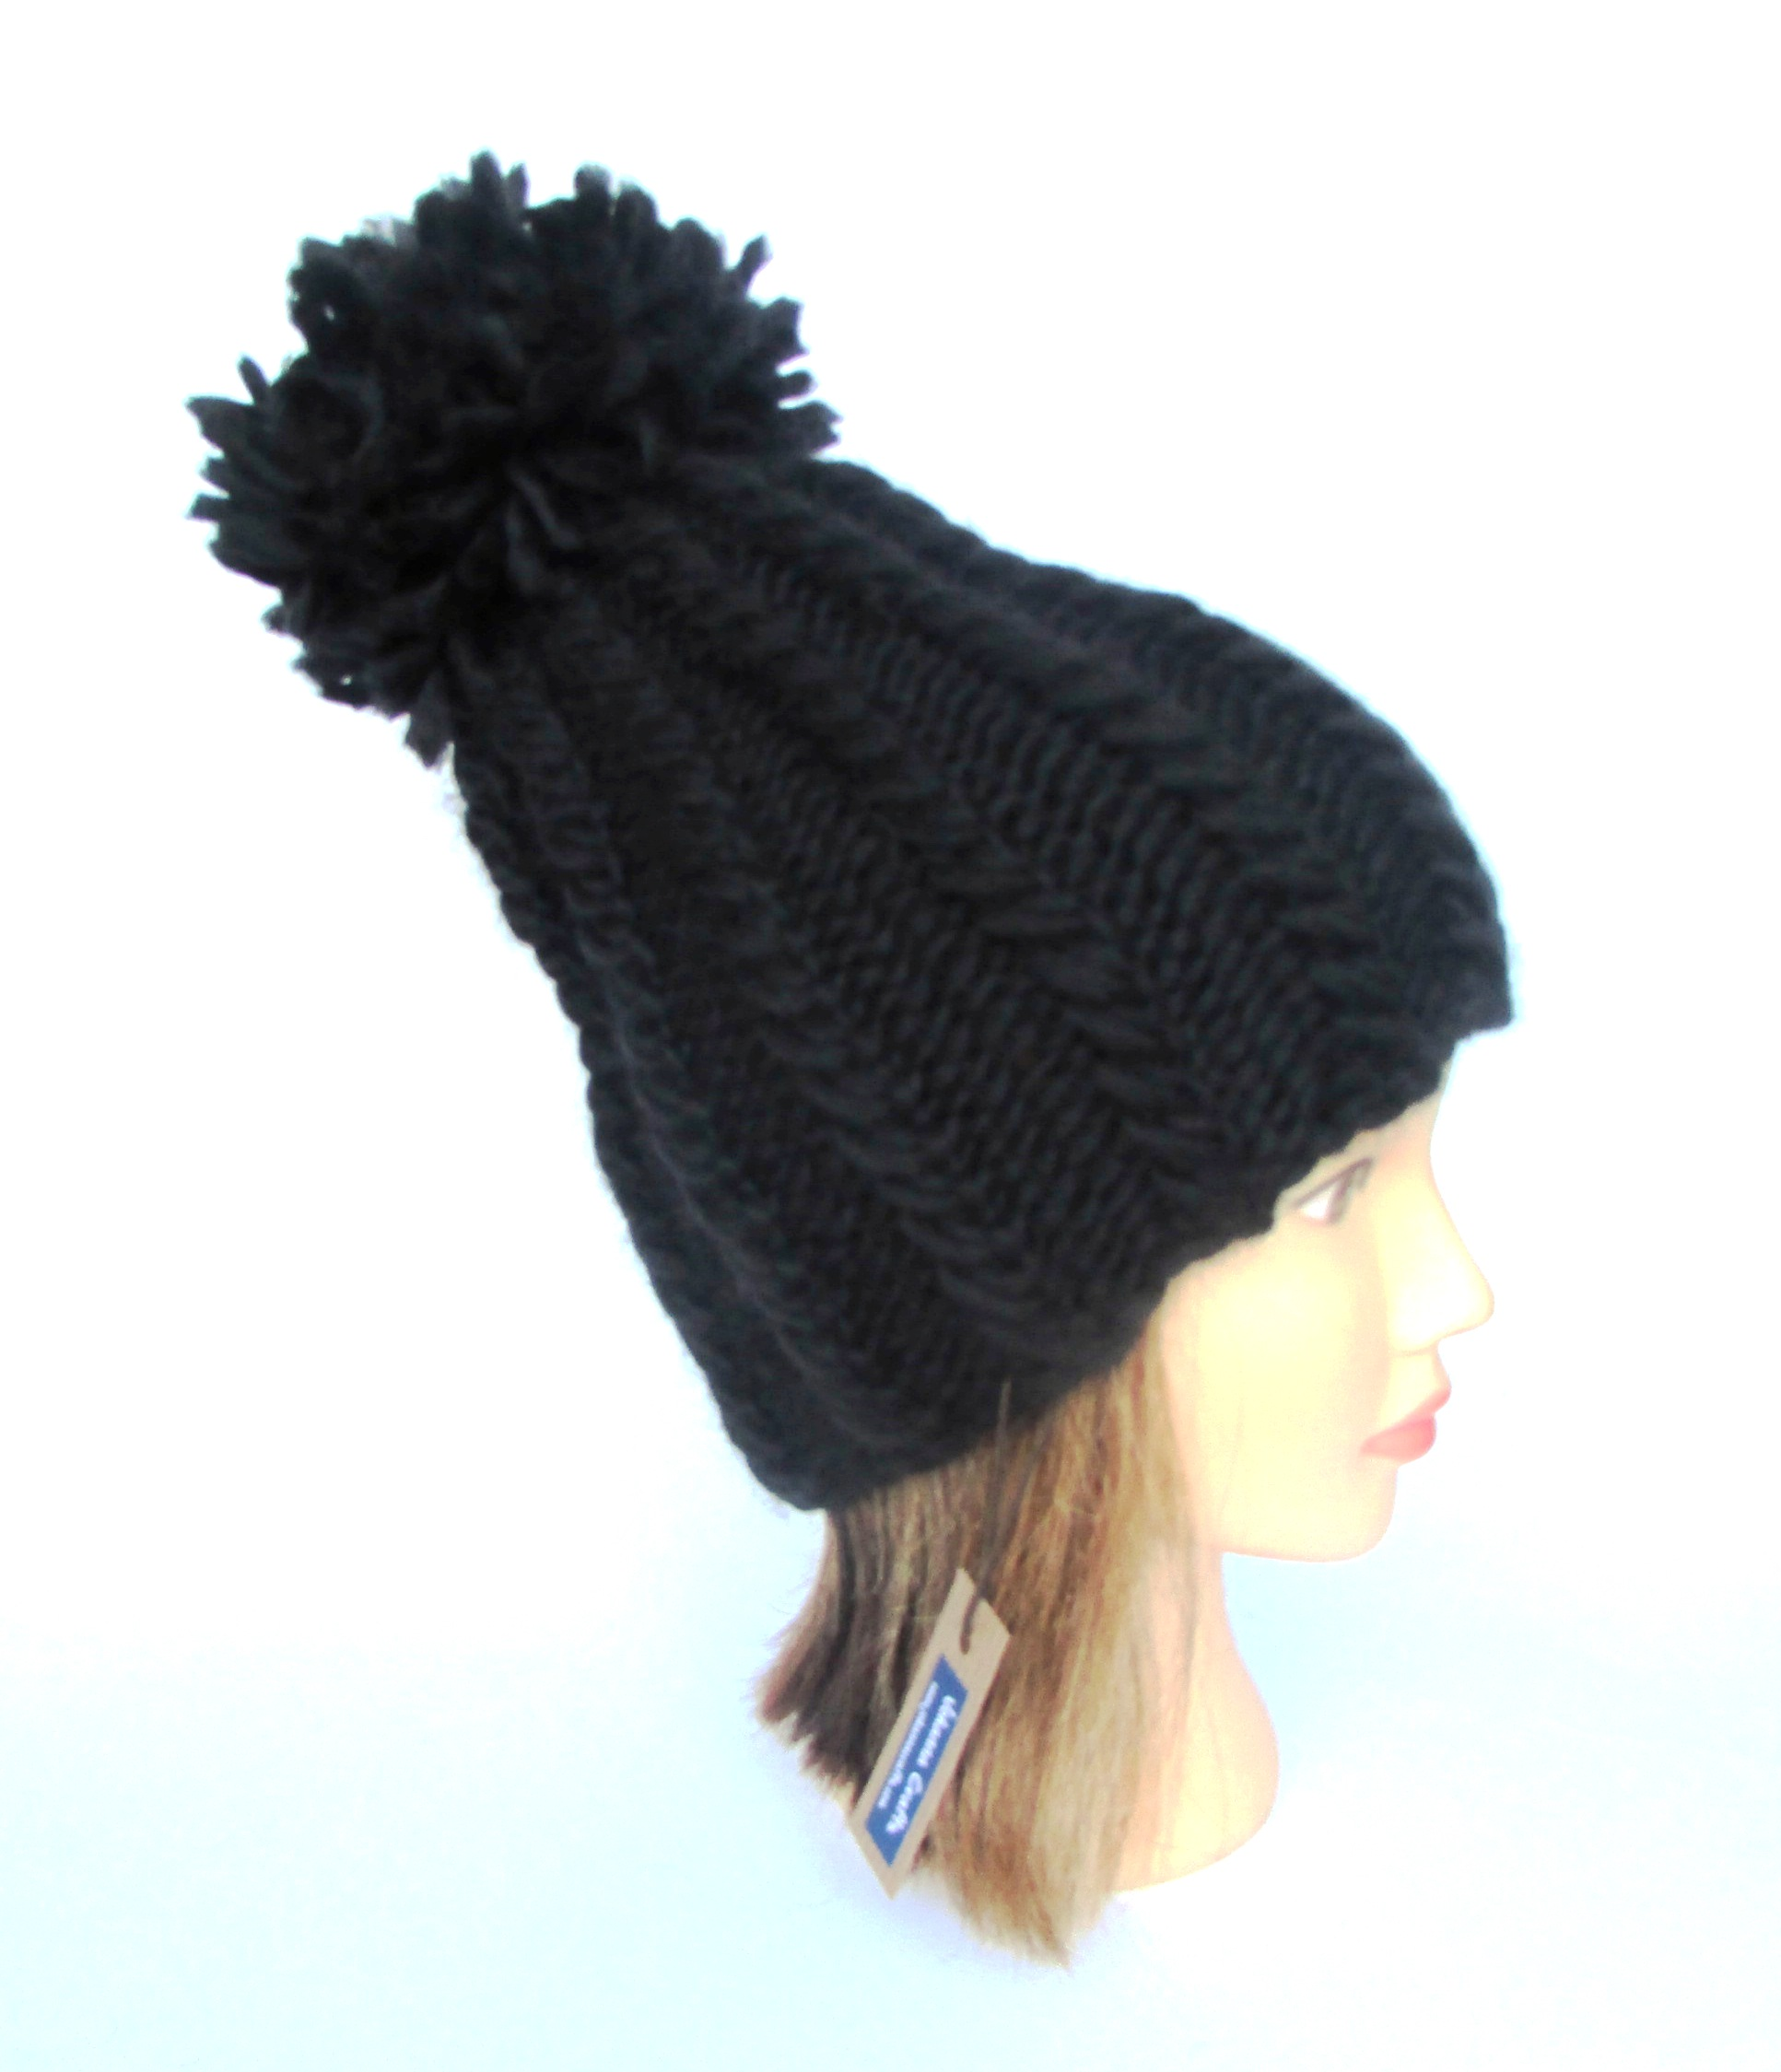 Tall hat with pompom - black hat for women - handknit hat - chunky ... 5797b3c014a5